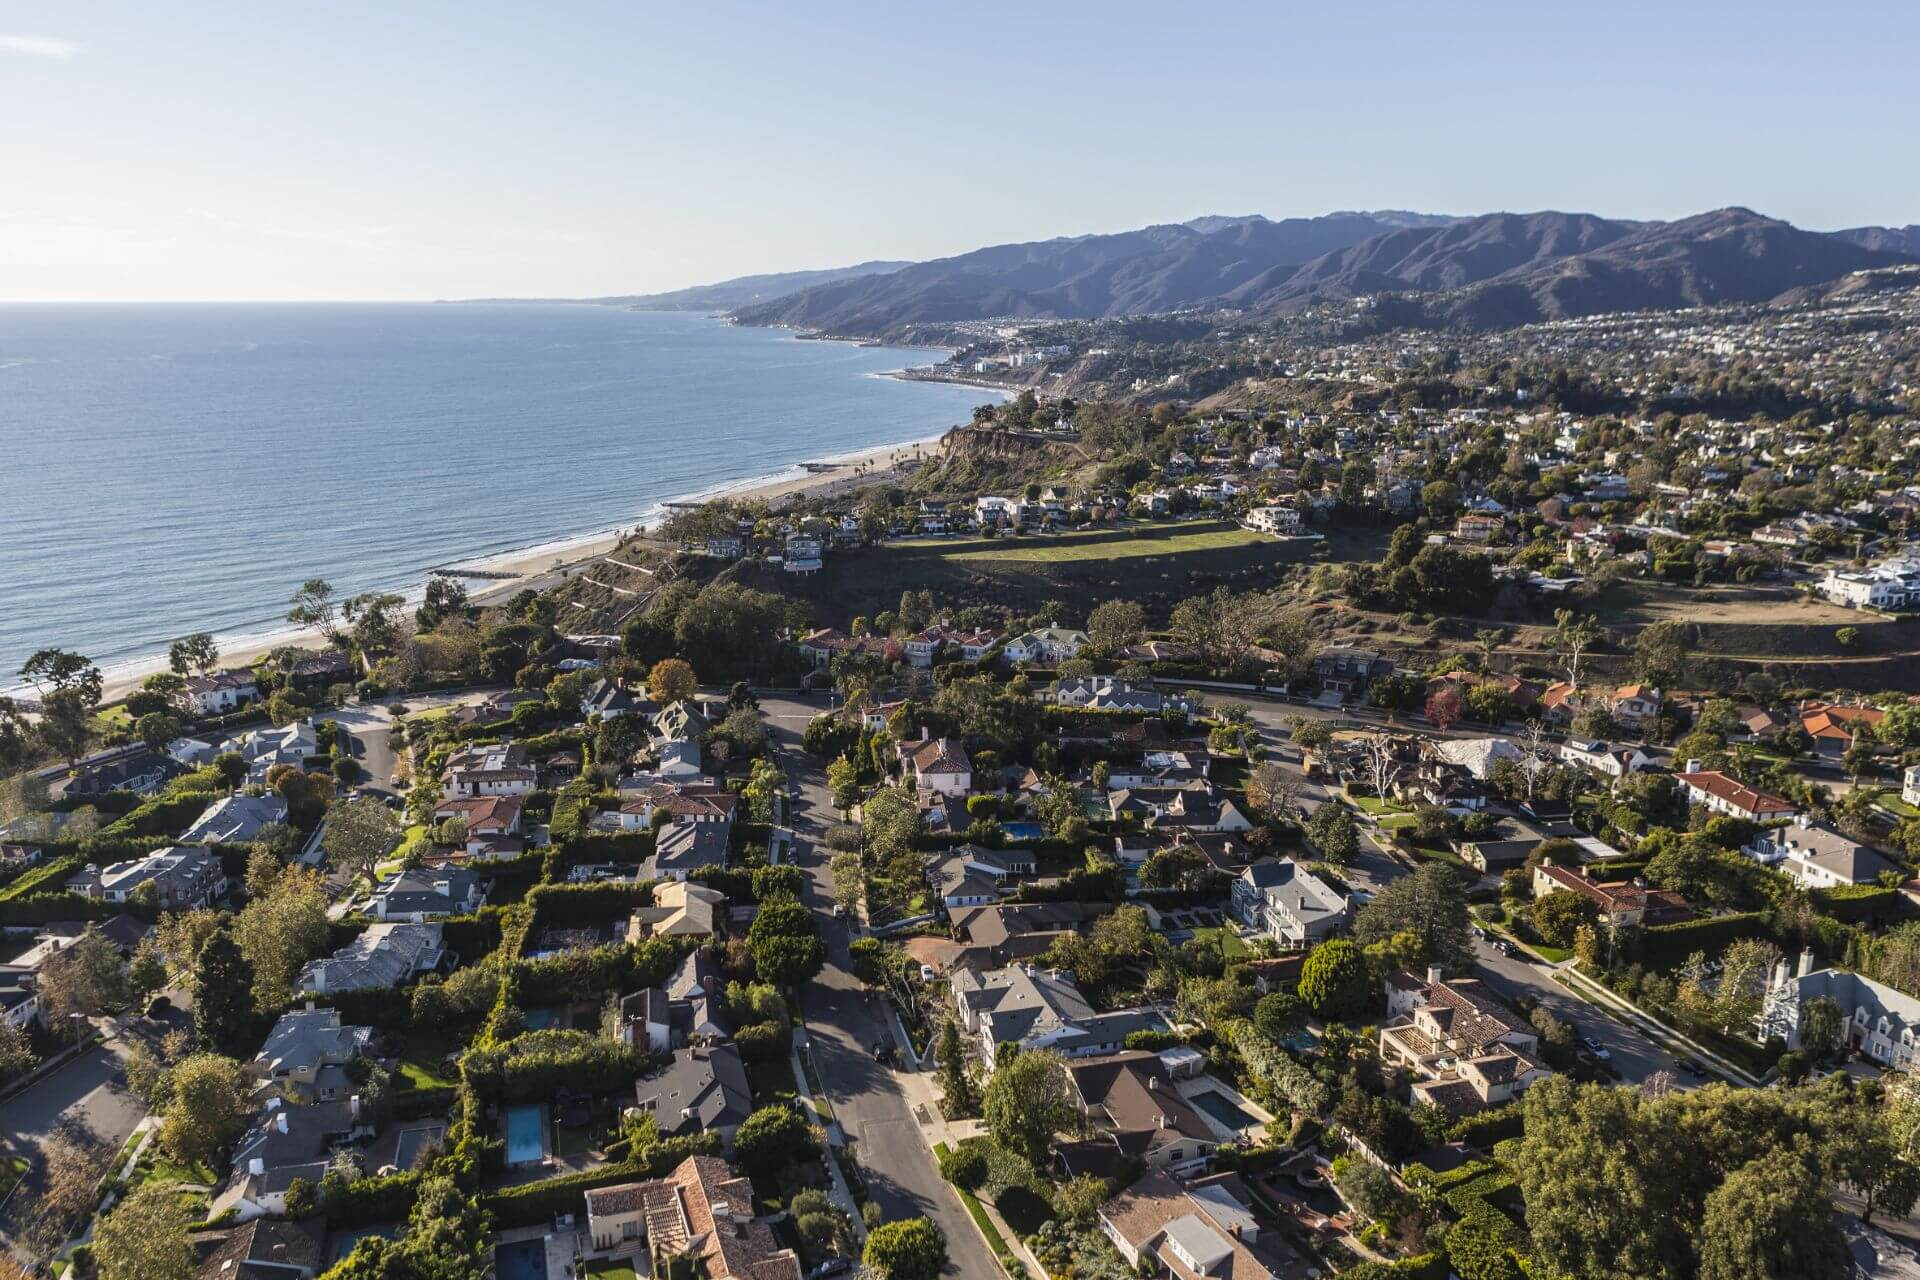 Meet Gregg Champion of START UP RECOVERY and THE RECOVERY PLAYBOOK in Pacific Palisades